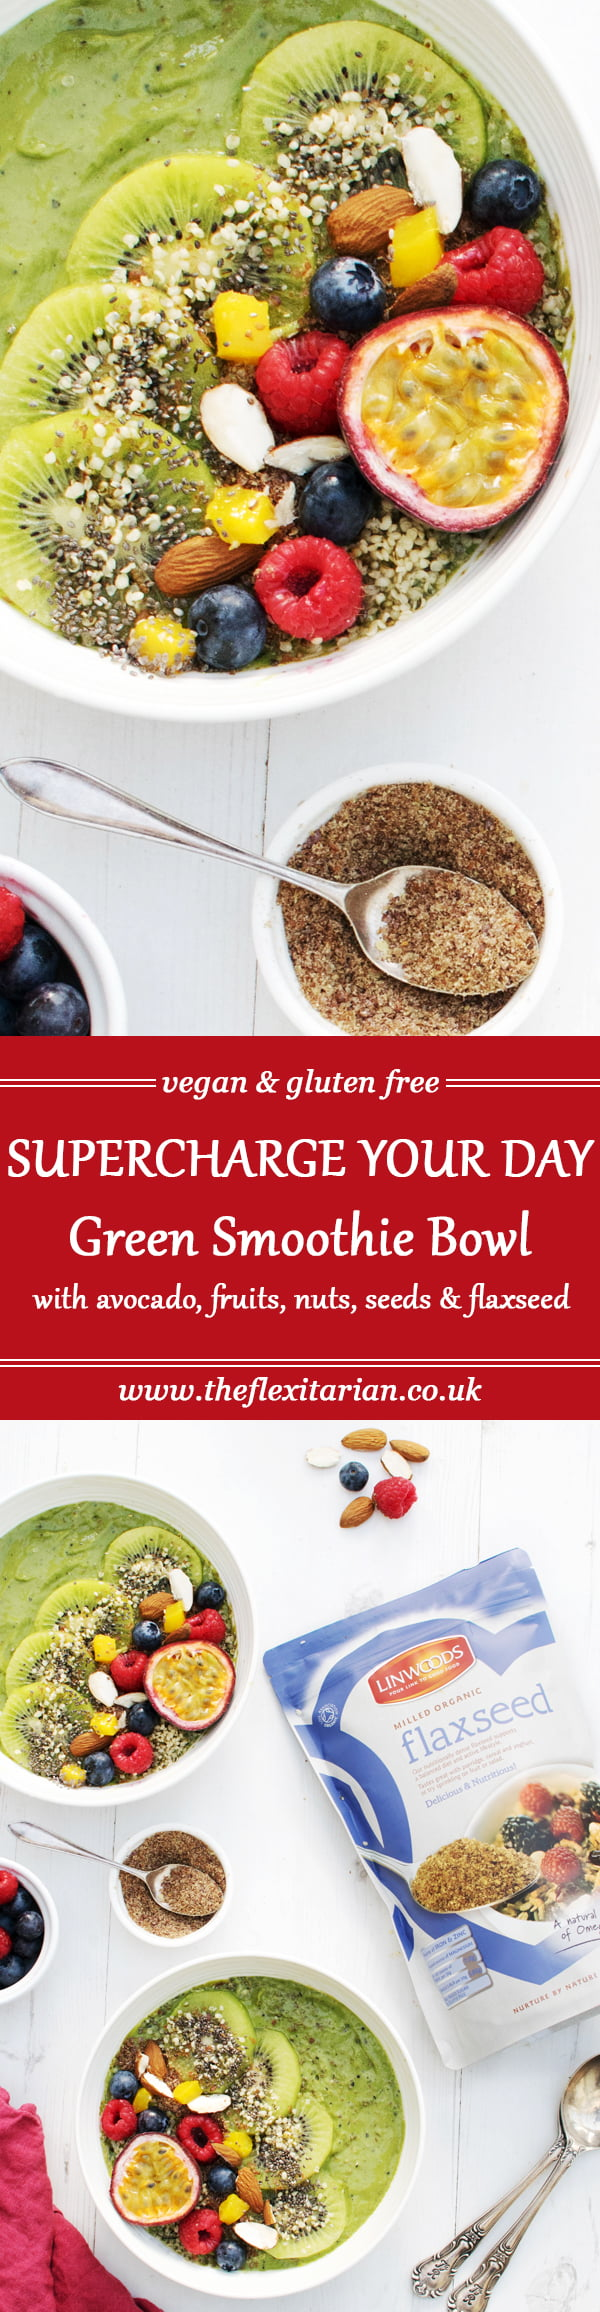 Supercharge Your Day Green Smoothie Bowl [vegan] [gluten free] by The Flexitarian